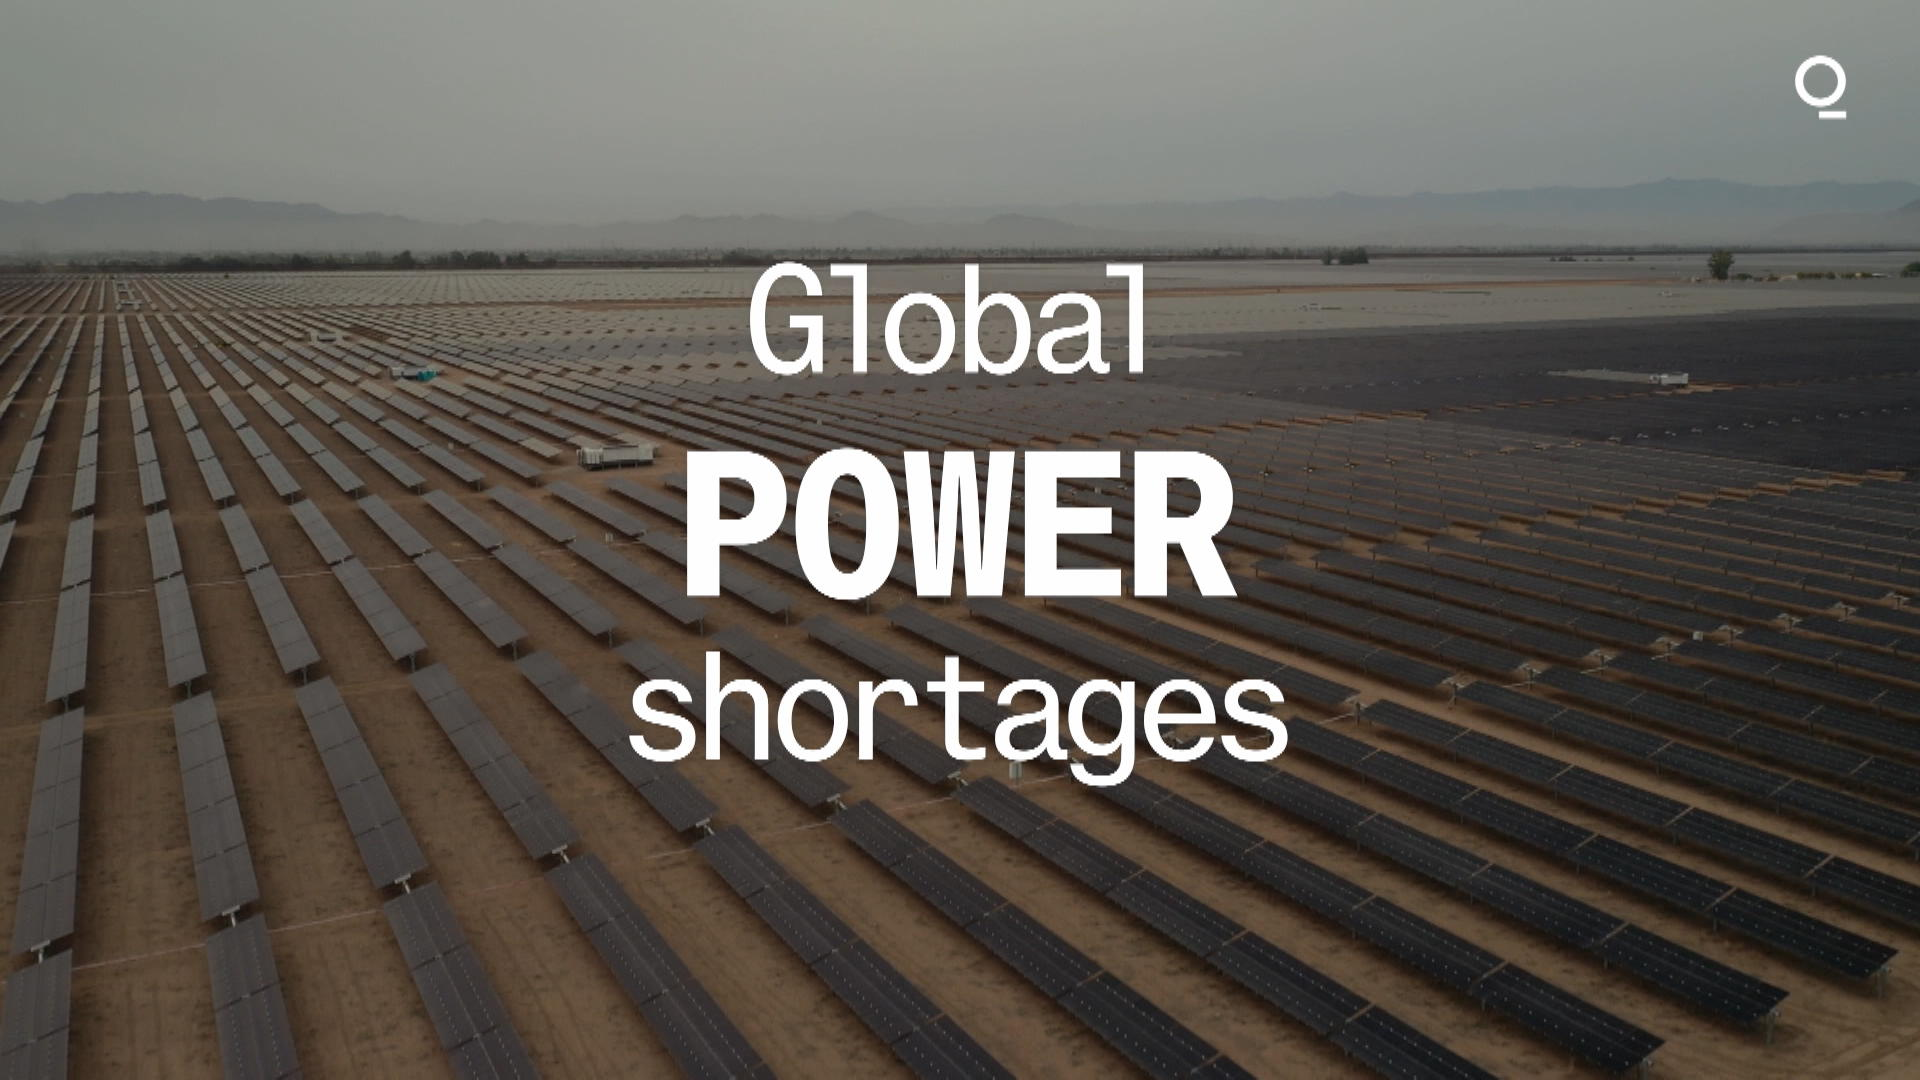 Global Power Shortages